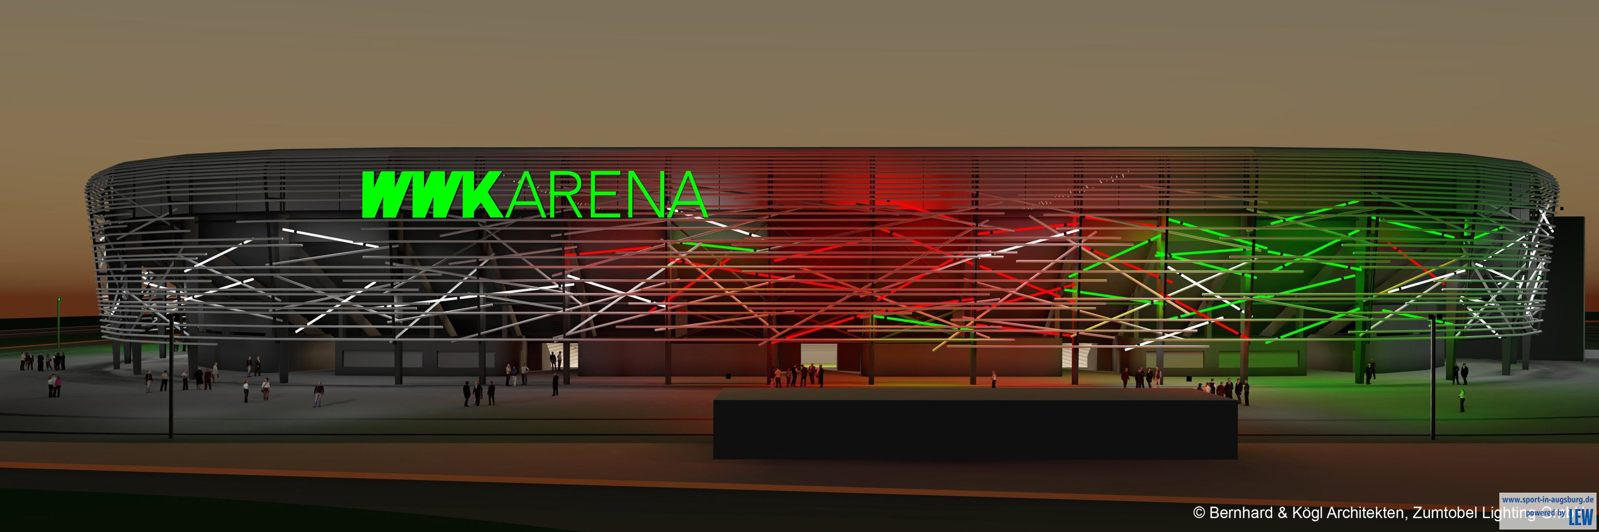 WWK Arena